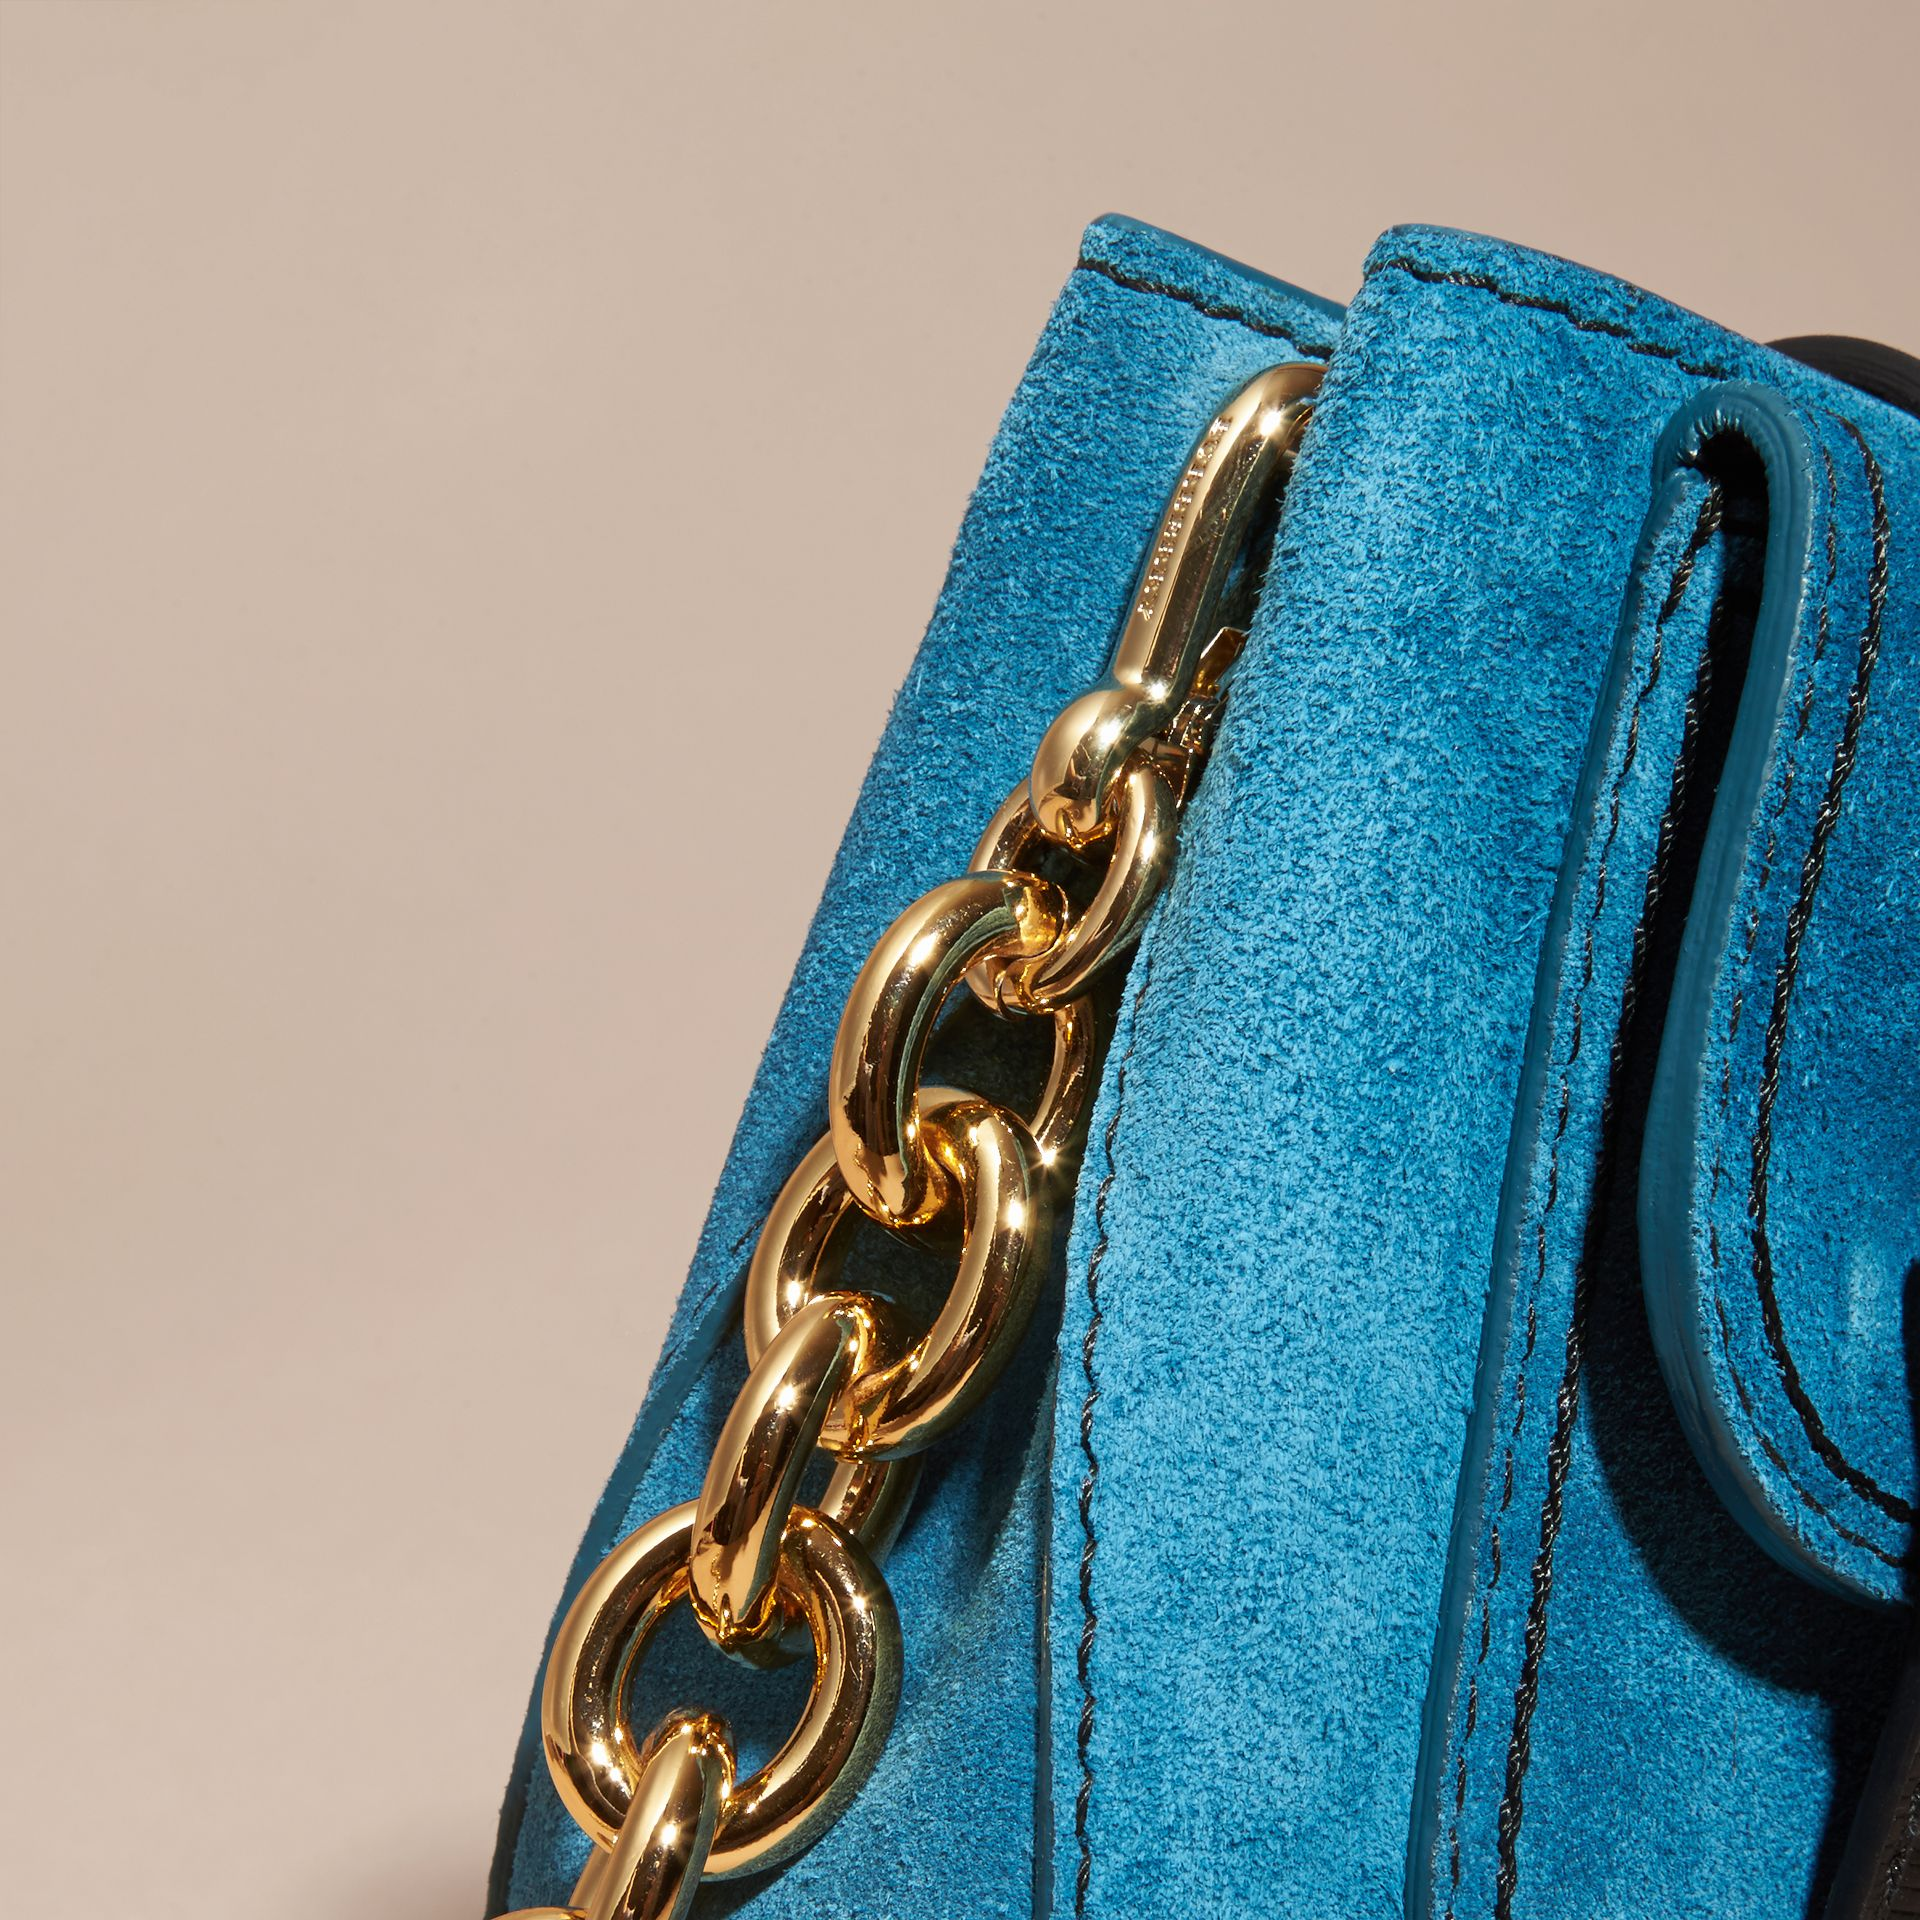 Peacock blue The Small Square Buckle Bag in Suede and Leather Peacock Blue - gallery image 7